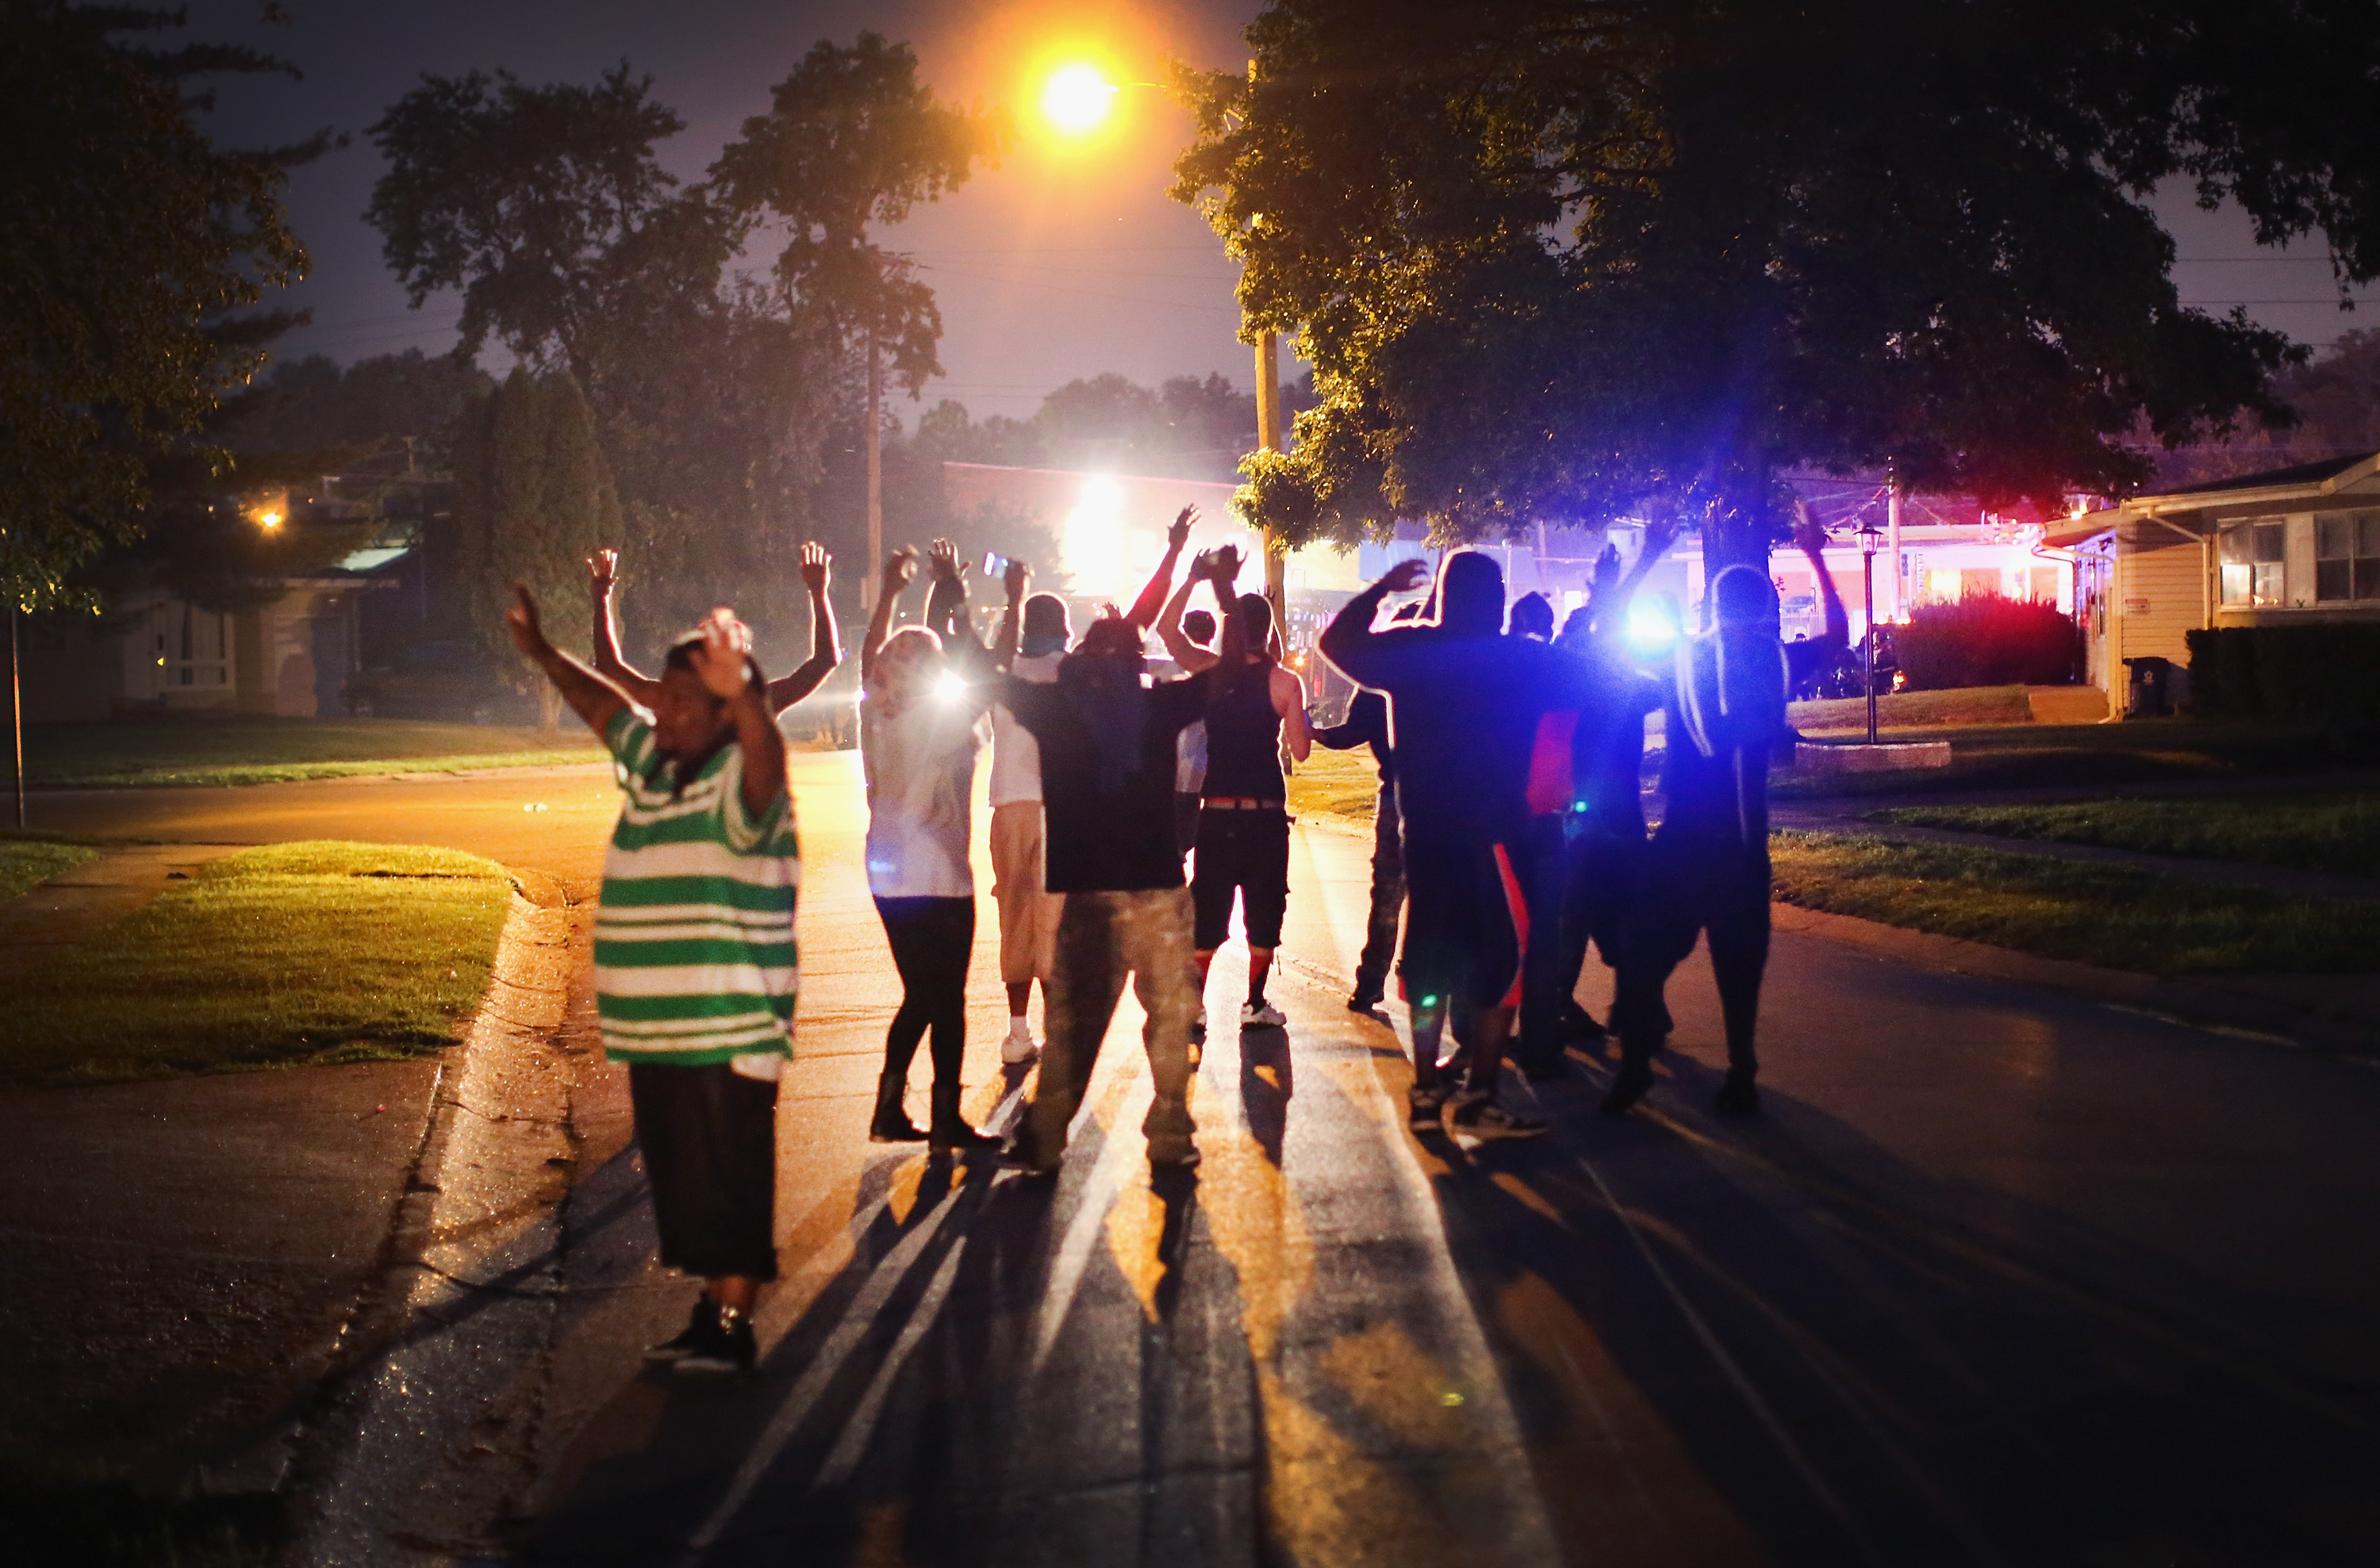 With their hands raised, residents gather at a police line as the neighborhood is locked down following skirmishes on August 11, 2014 in Ferguson, Missouri.